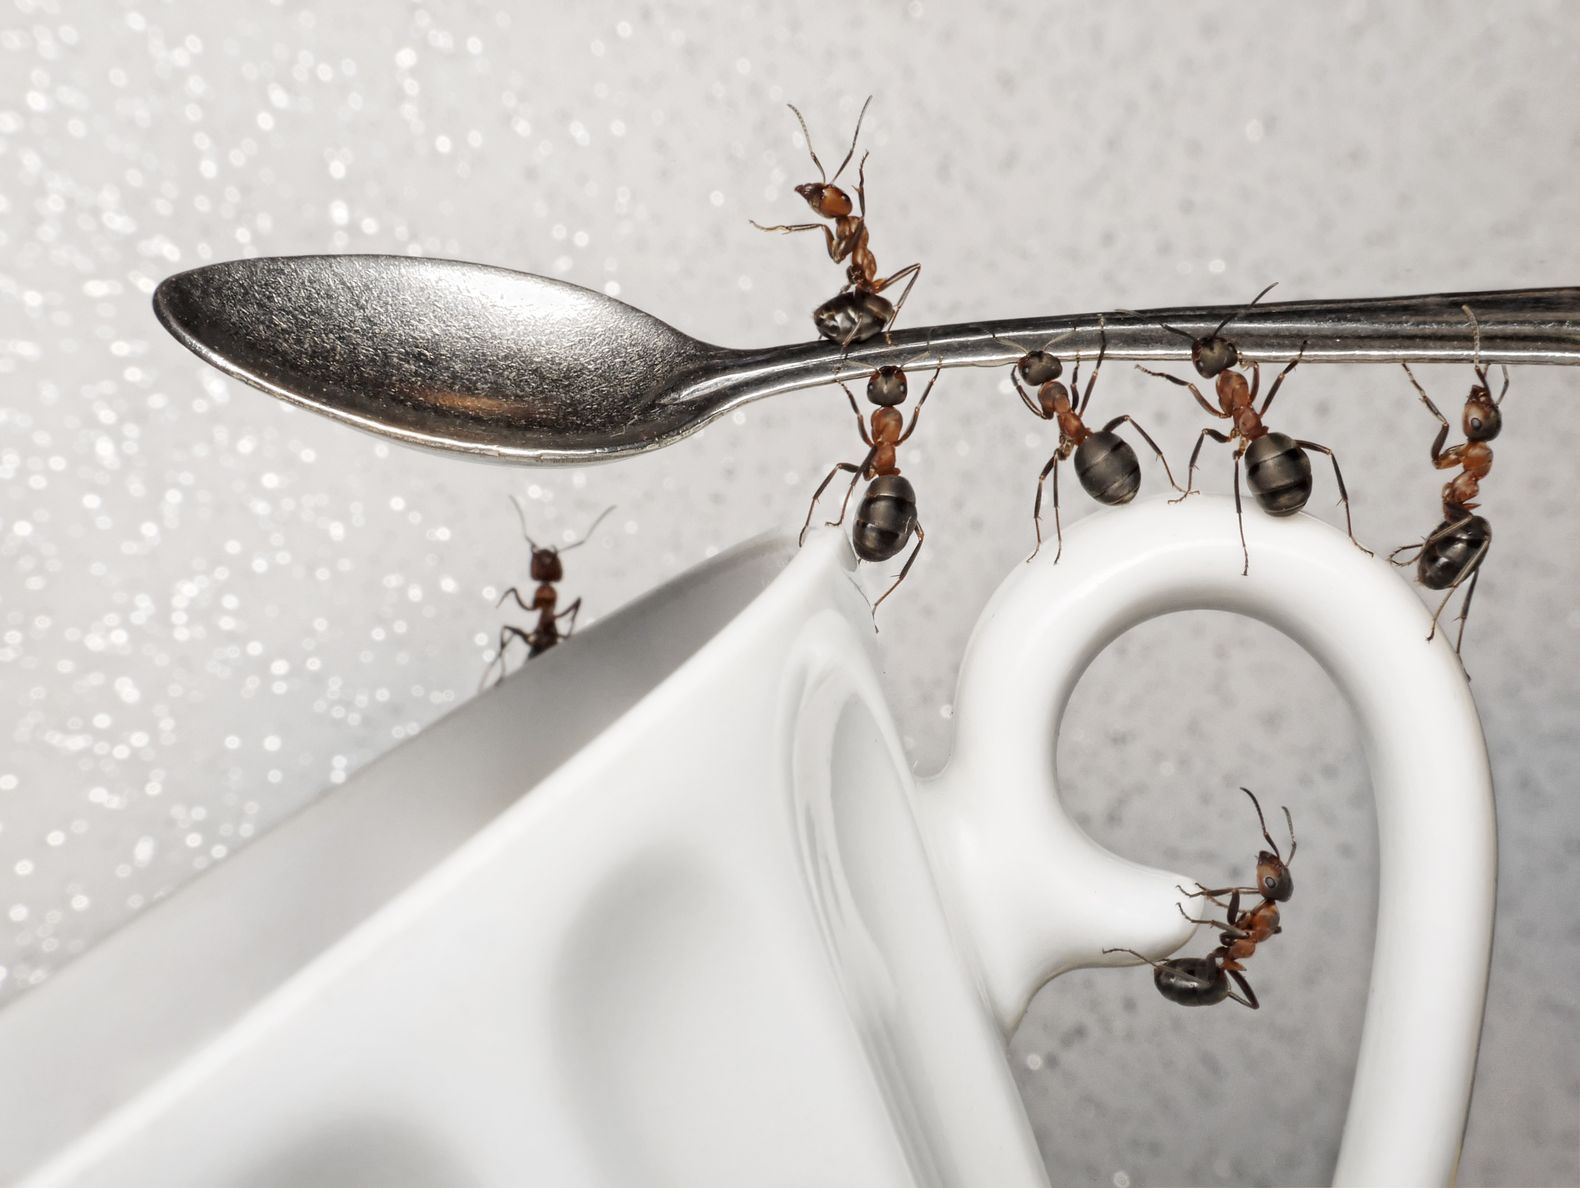 12fb7a732fa6c0aaa5e95e902be6ddee - How To Get Rid Of Ants In The Apartment